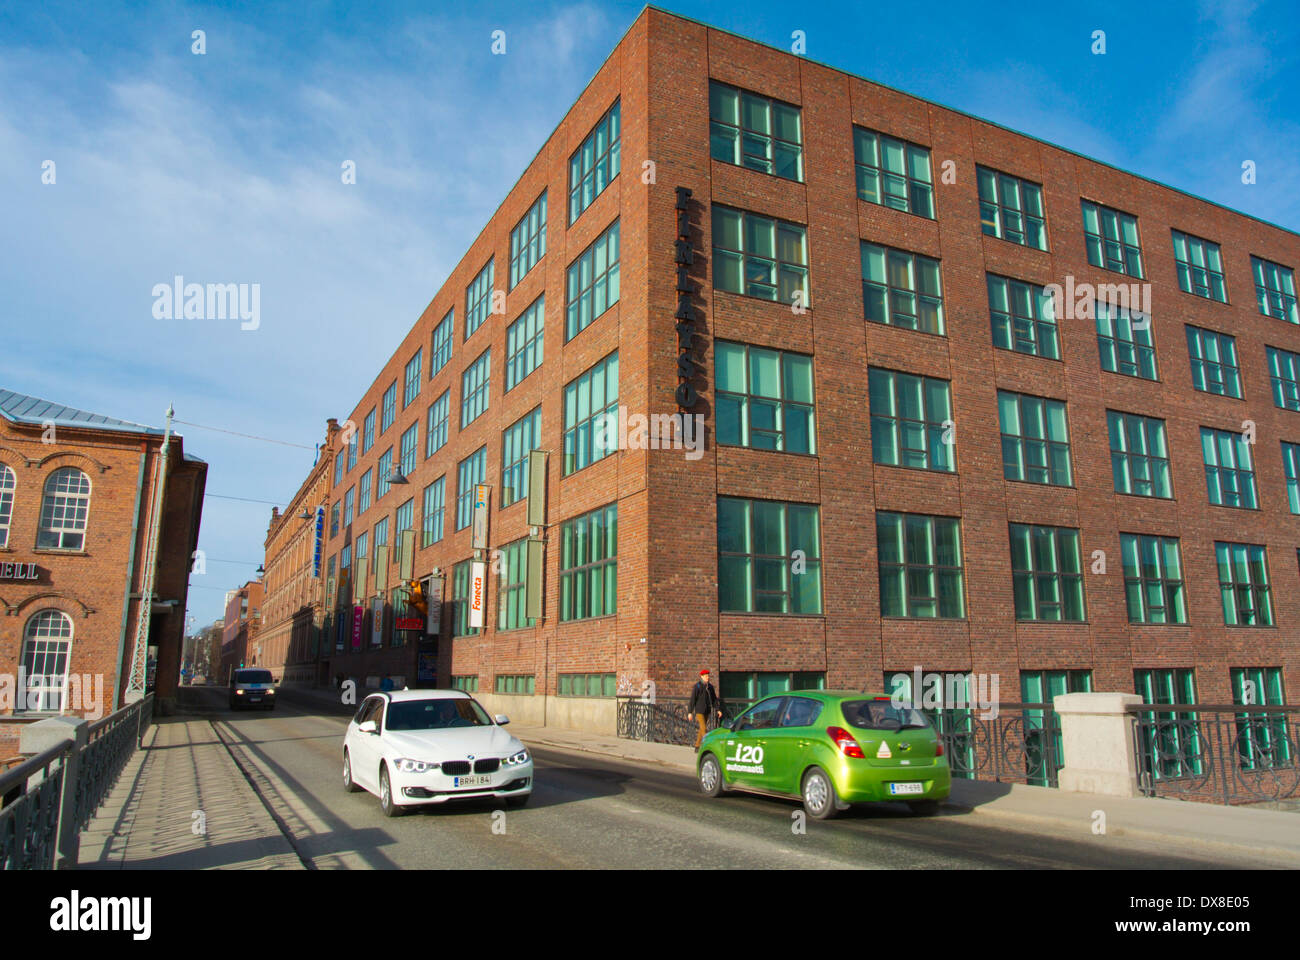 Satakunnankatu street going past Finlayson, converted former industrial buildings by Tammerkoski river, central Tampere - Stock Image